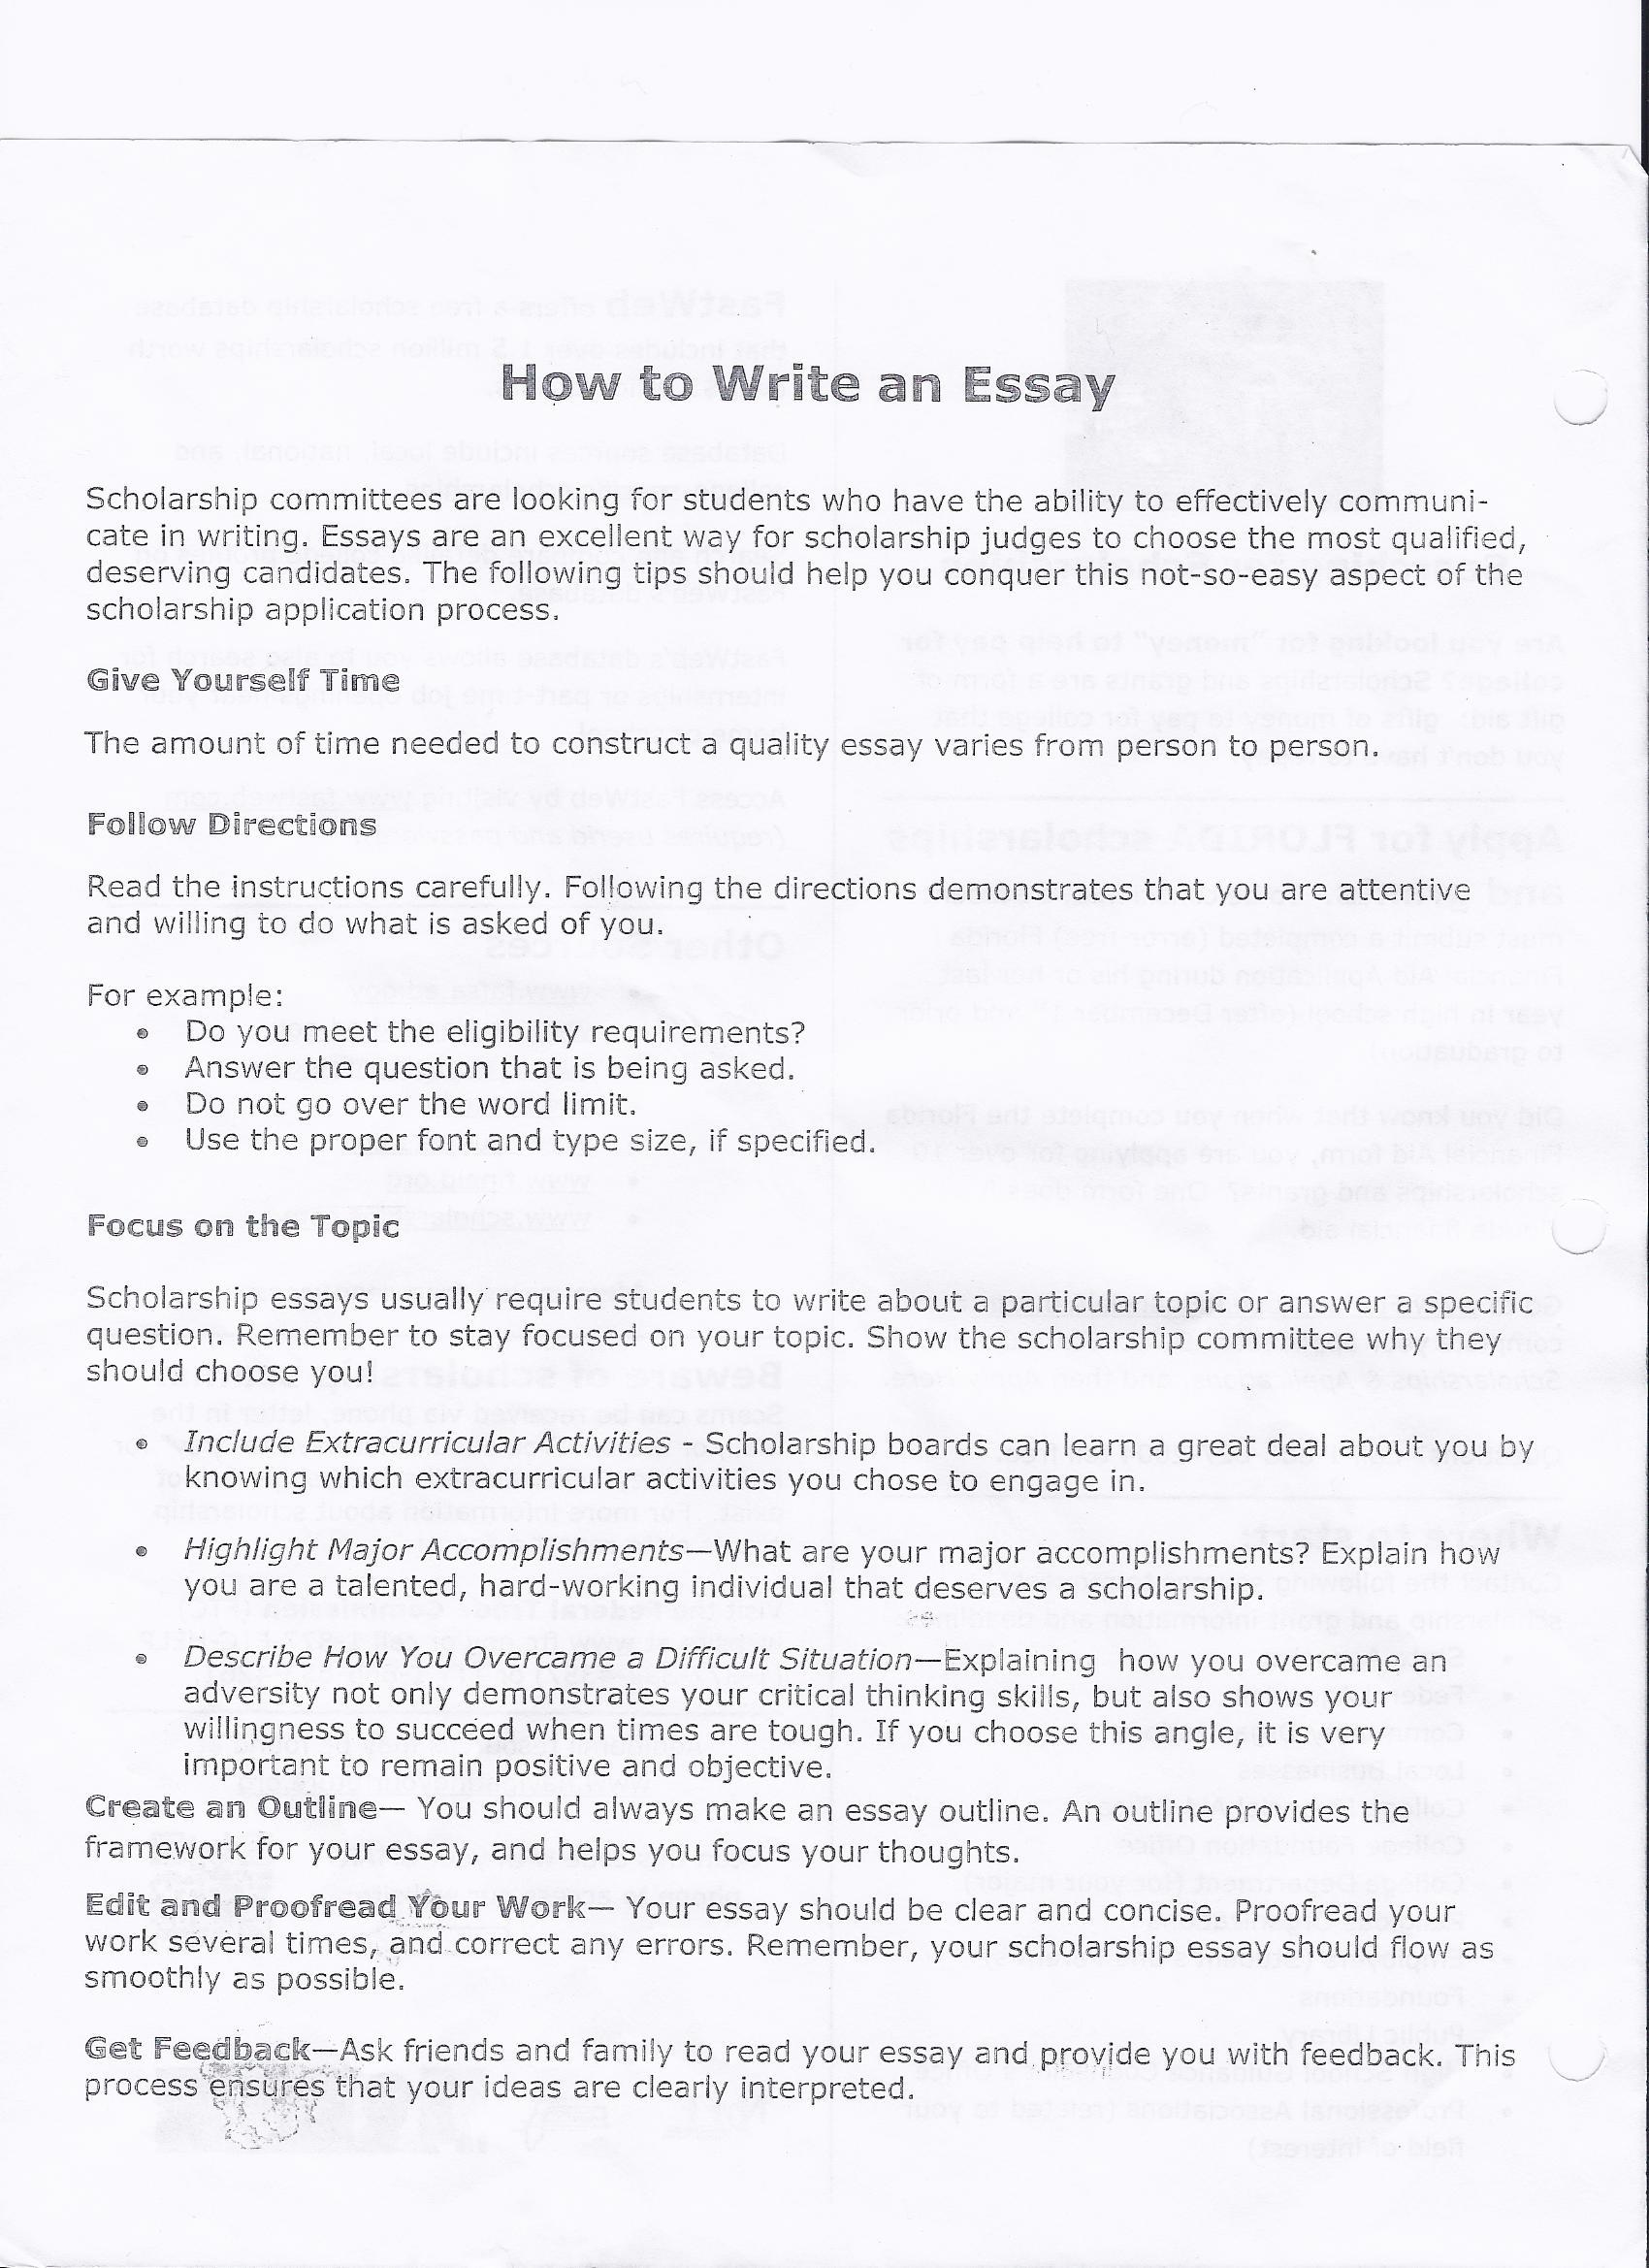 obstacle essay u s department of > photos > photo essays > essay  essays on child nutrition essays on heathcliff essayages obstacle essay overcoming obstacles gcse english marked by